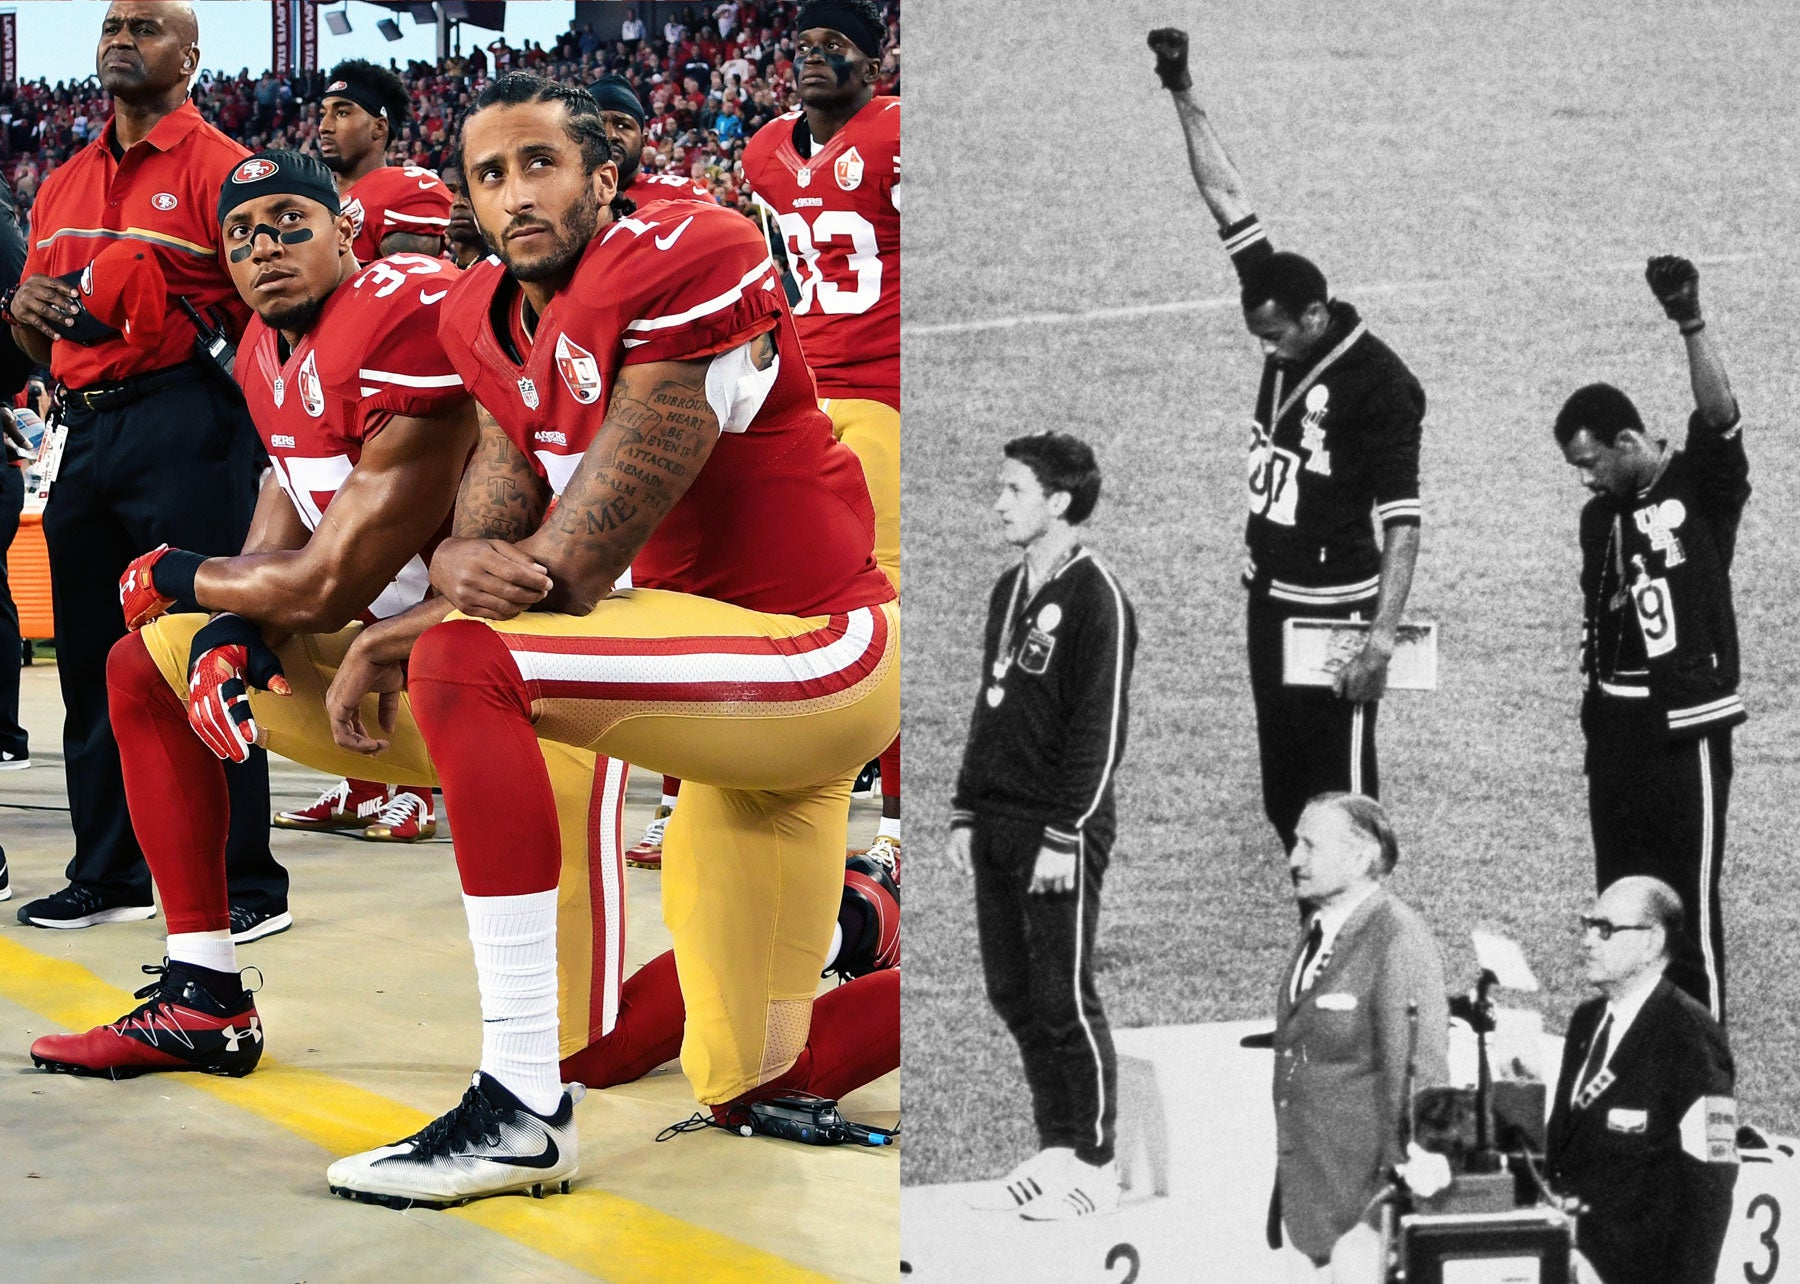 Left: Colin Kaepernick and Eric Reid of the San Francisco 49ers kneel in protest during the national anthem prior to playing the Los Angeles Rams at Levi's Stadium on Sept. 12, 2016, in Santa Clara, California. Right: American sprinters Tommie Smith and John Carlos raise their fists at the 1968 Olympic Games in Mexico City.